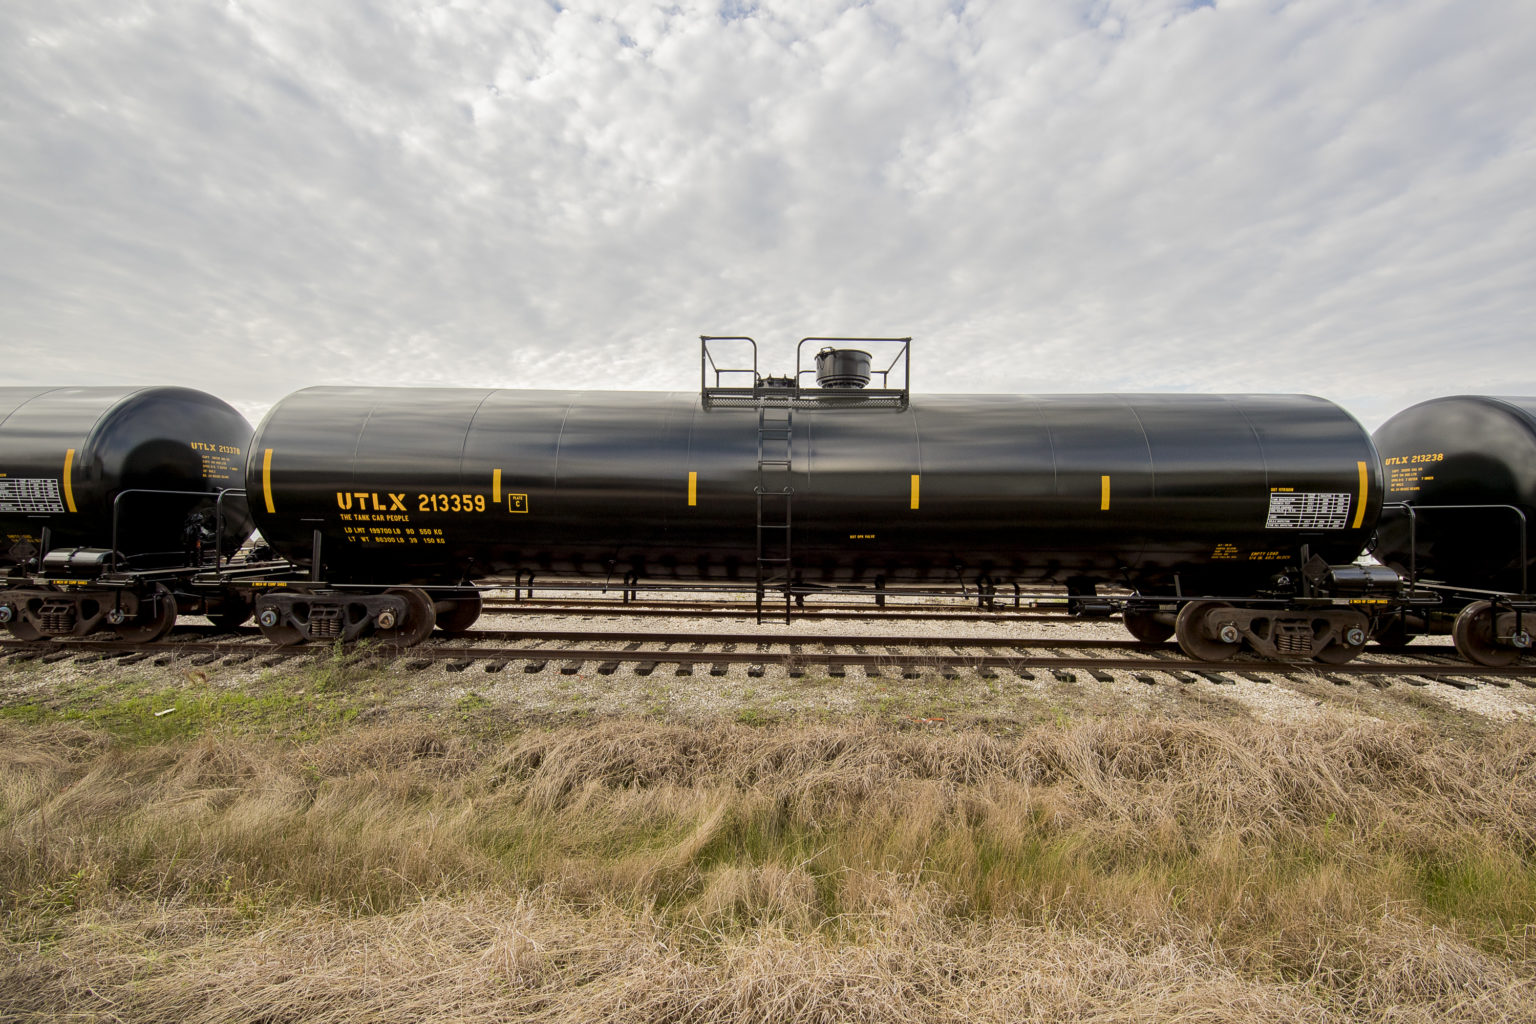 Union Tank Car Company | The Tank Car People